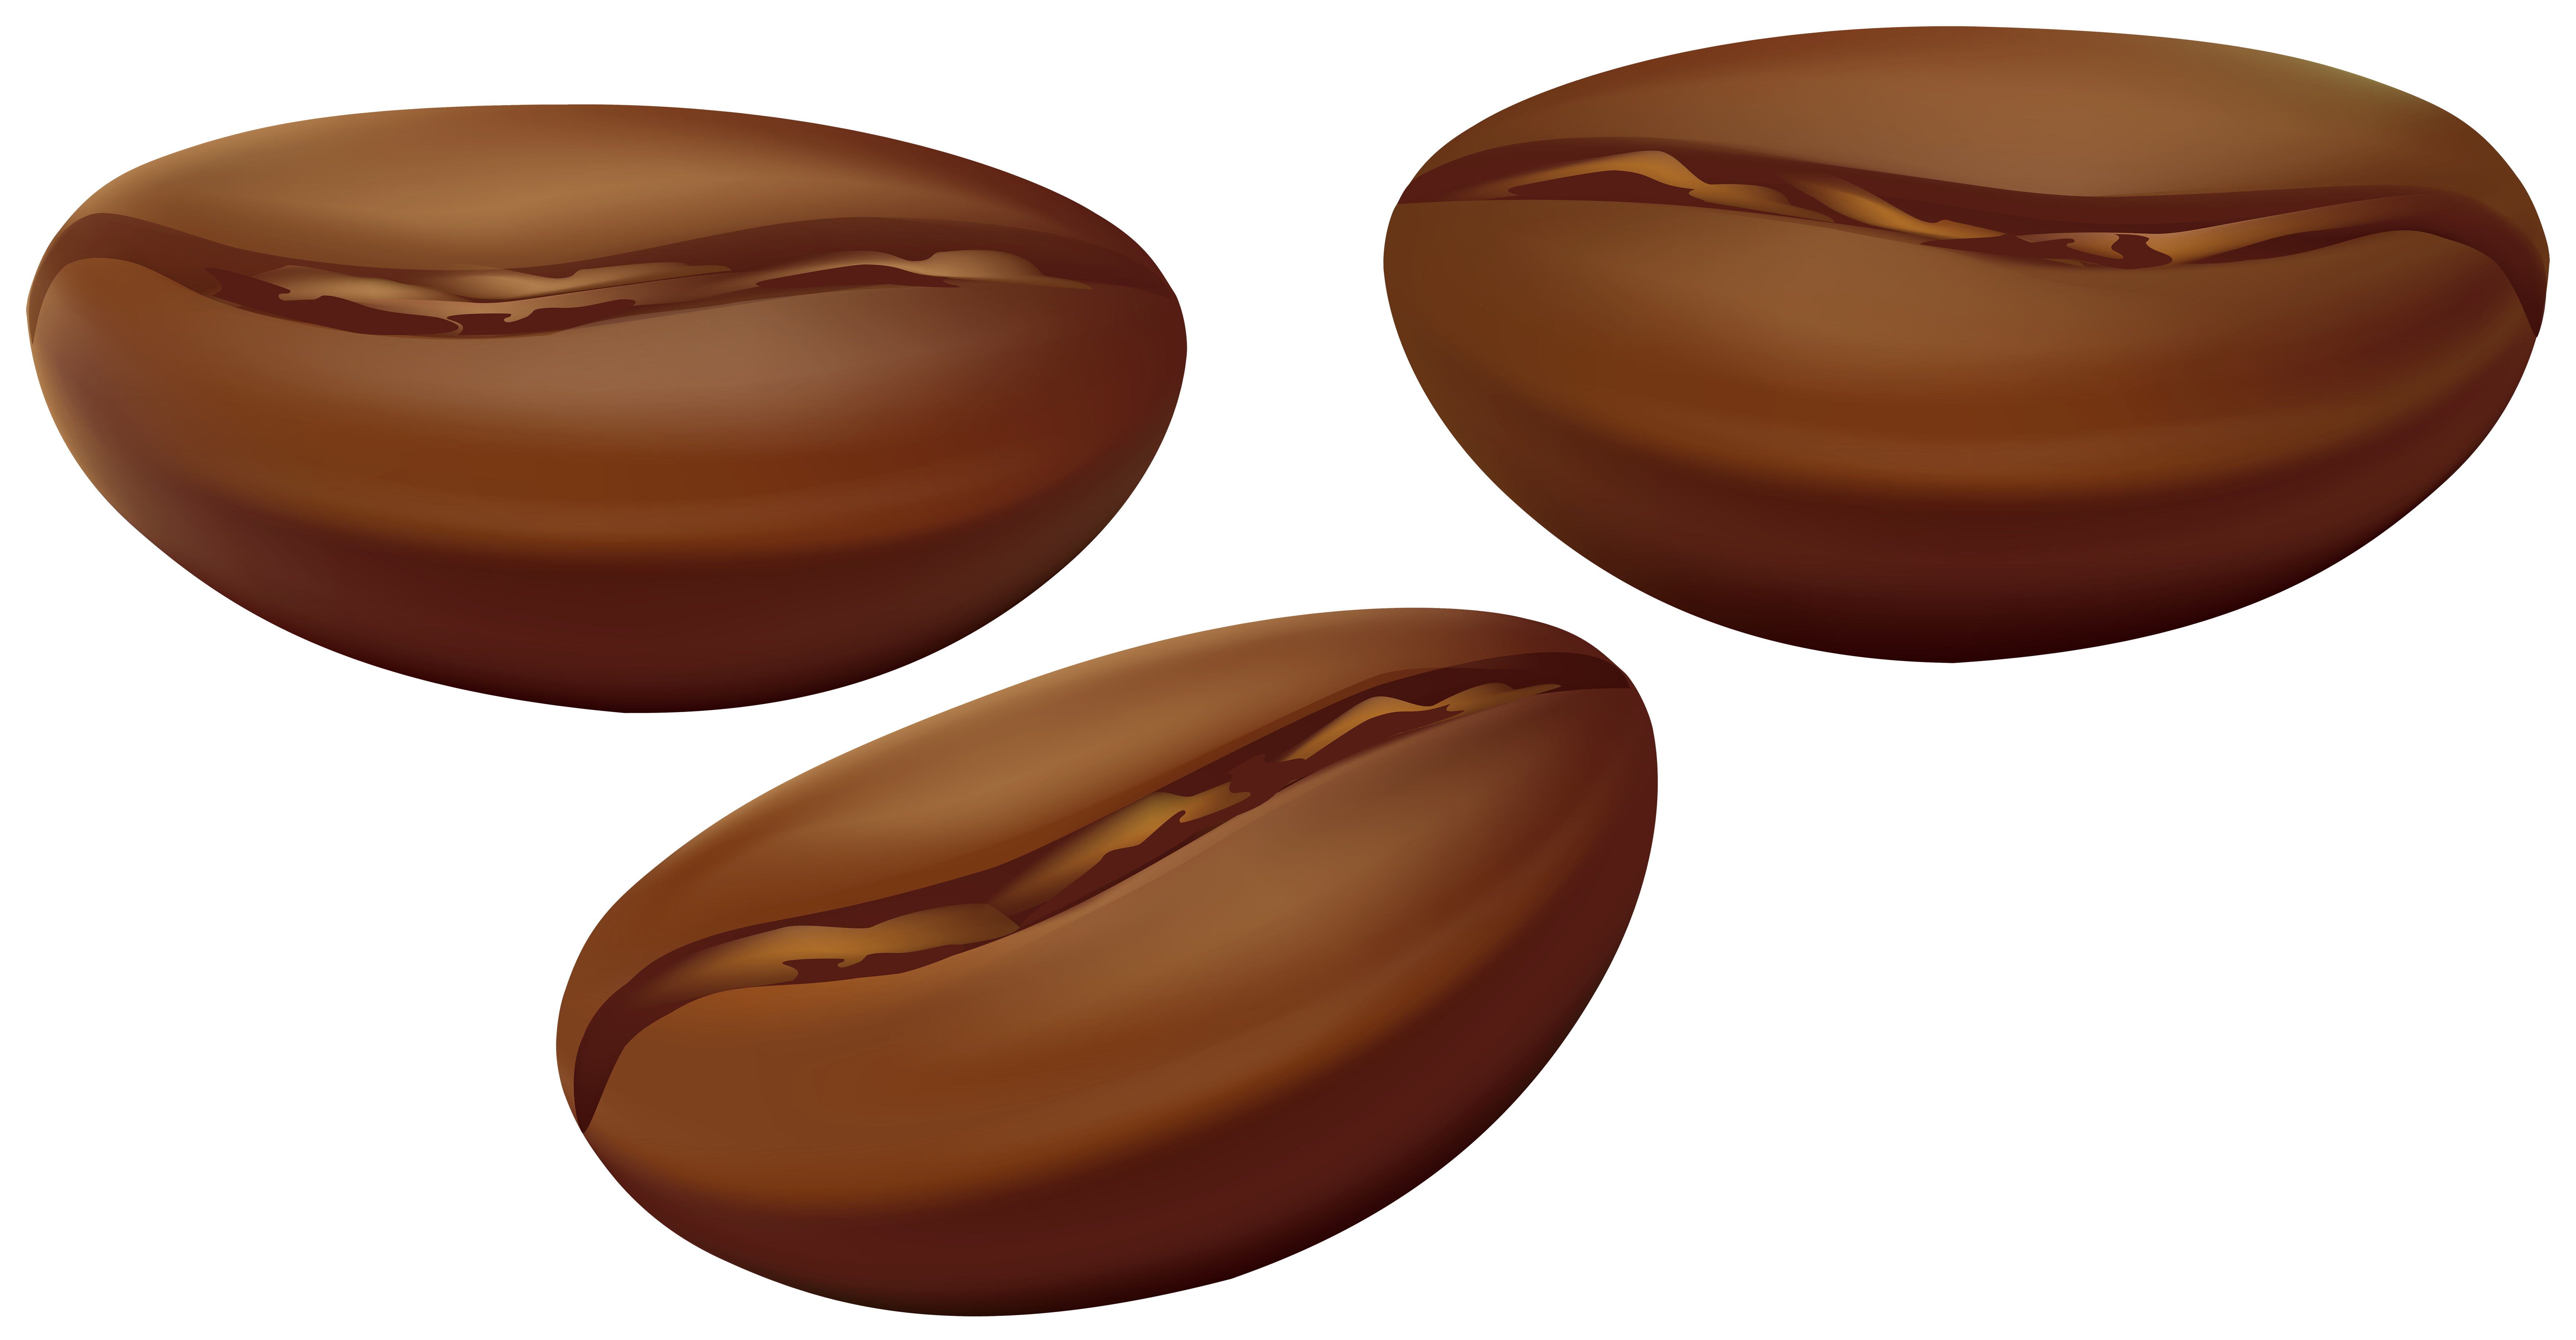 Beans clipart png.